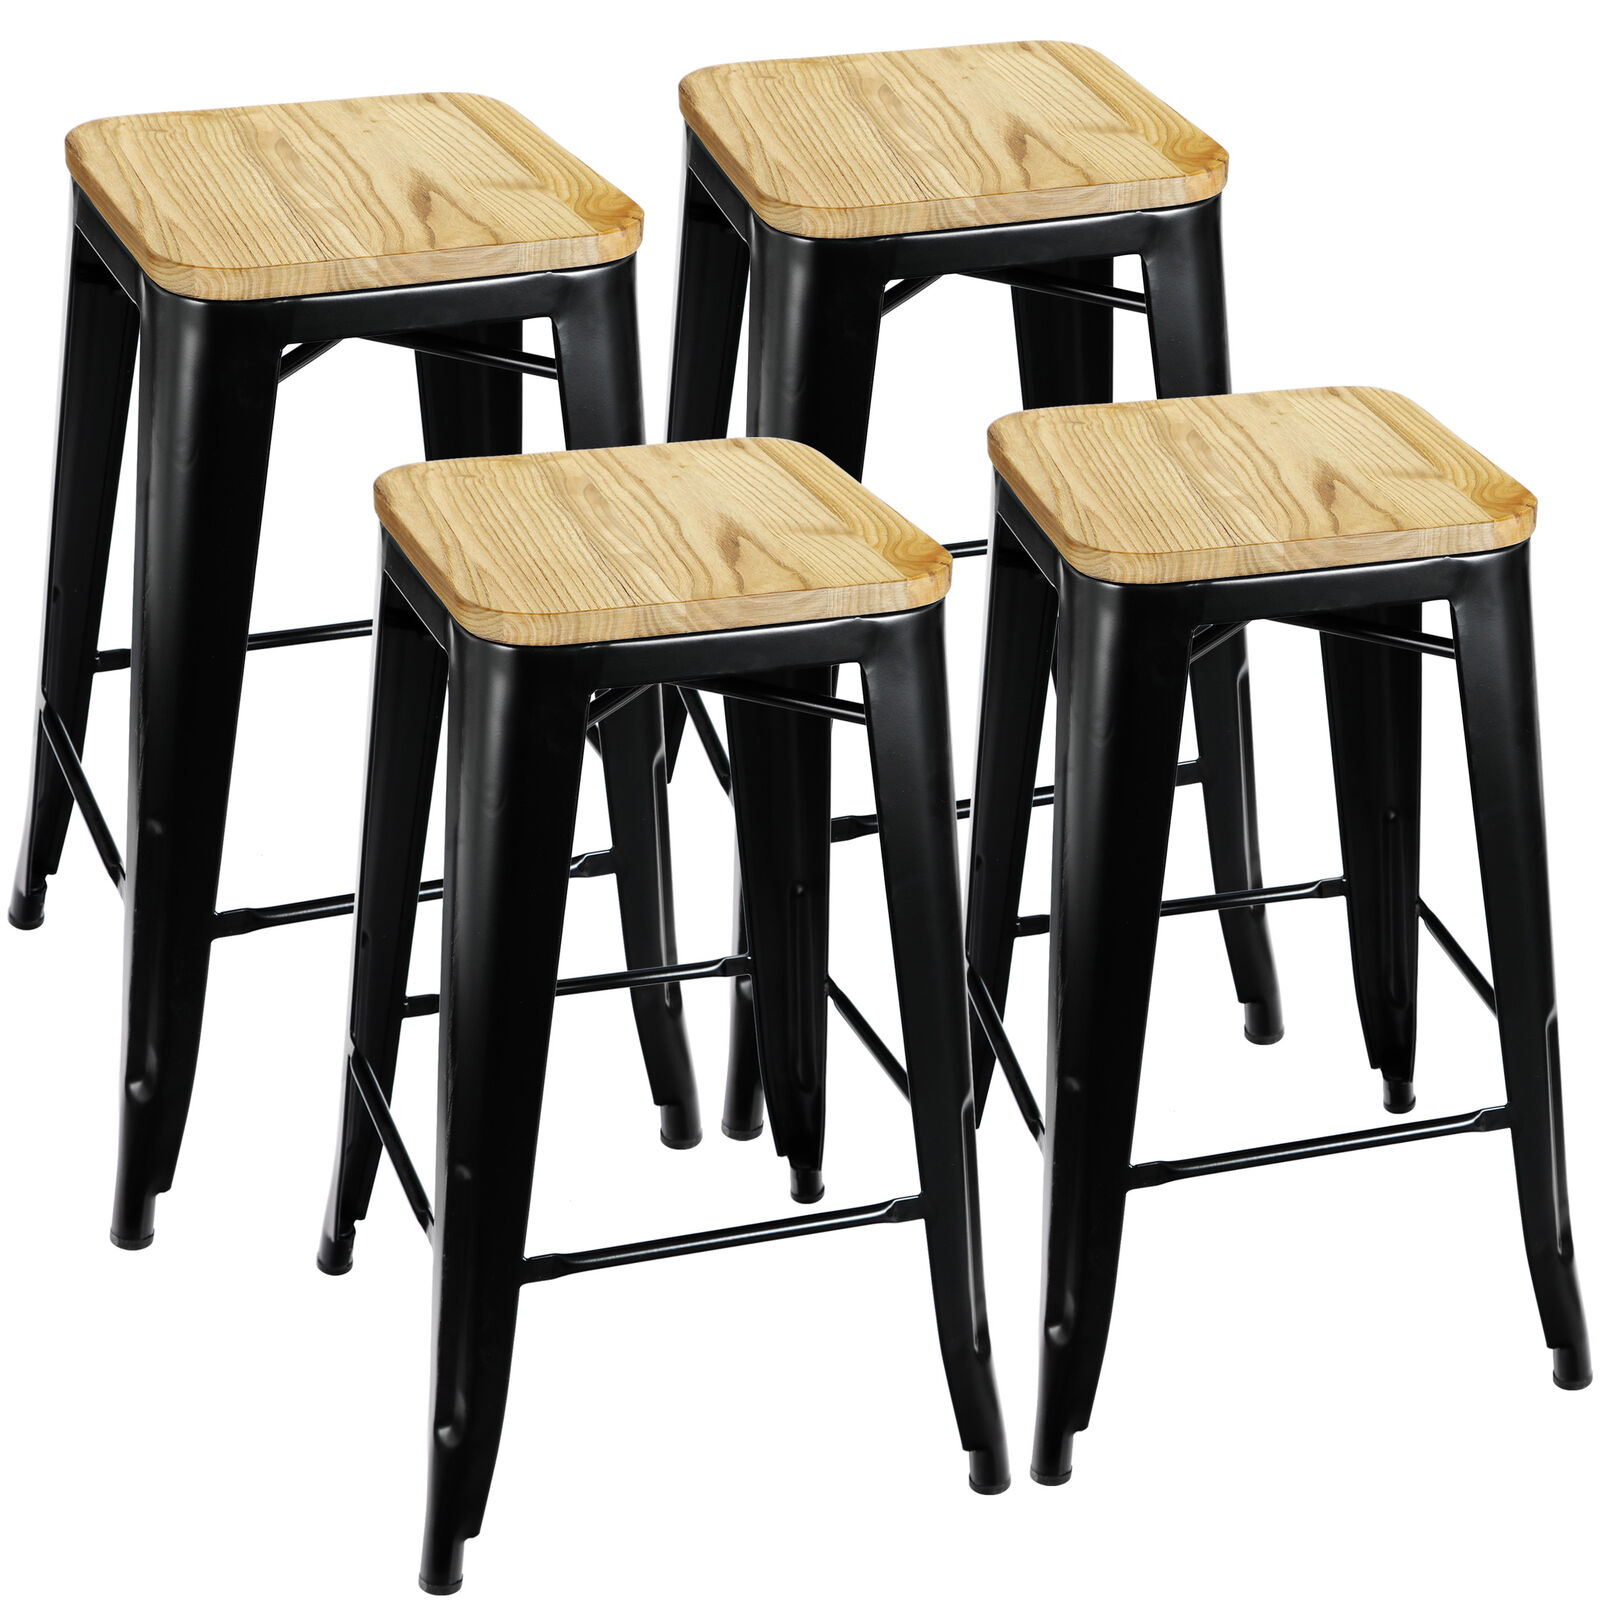 26 Inch Industrial Distressed Metal Counter Height Bar Stools With Backs Set Of For Sale Online Ebay